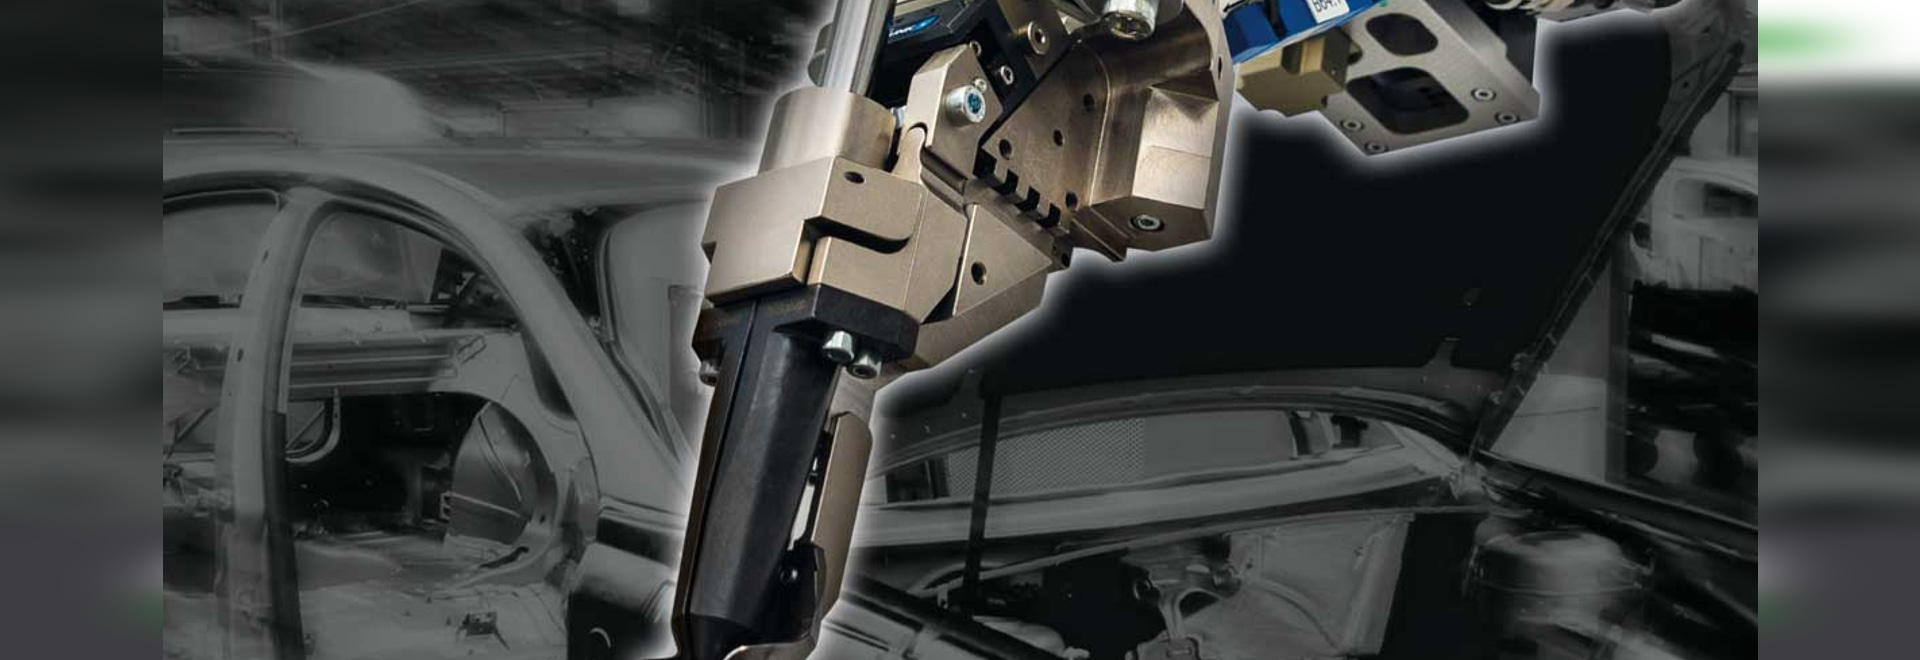 ADAPTIVE DFS – the adaptive DEPRAG Fastening System: automated, controlled flow form screwdriving